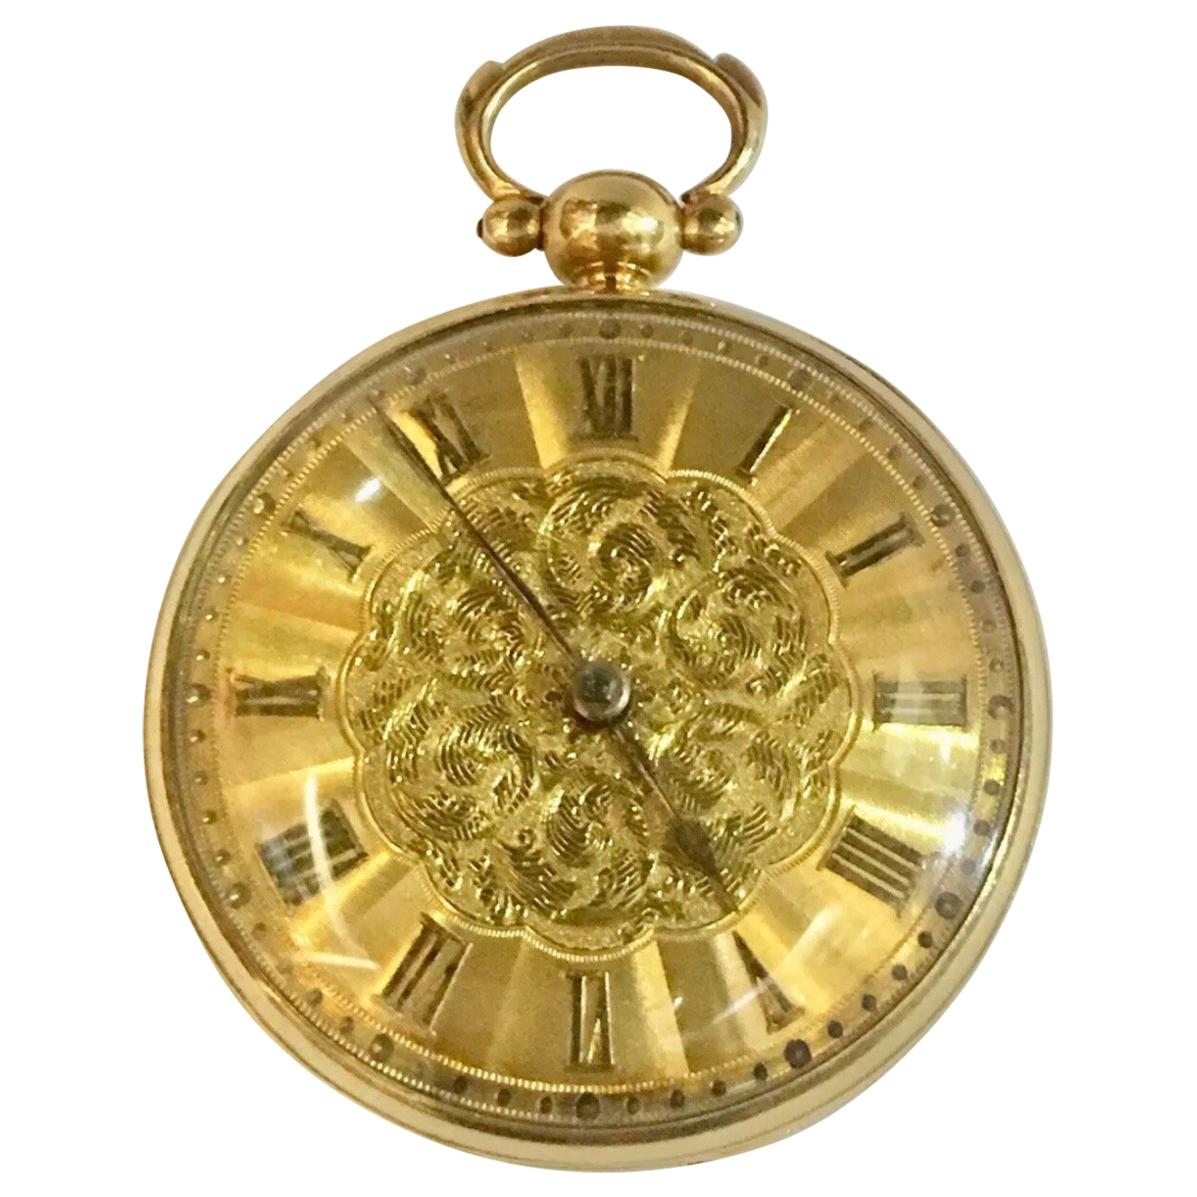 Antique 18k Gold Pocket Watches - 141 For Sale at 1stdibs